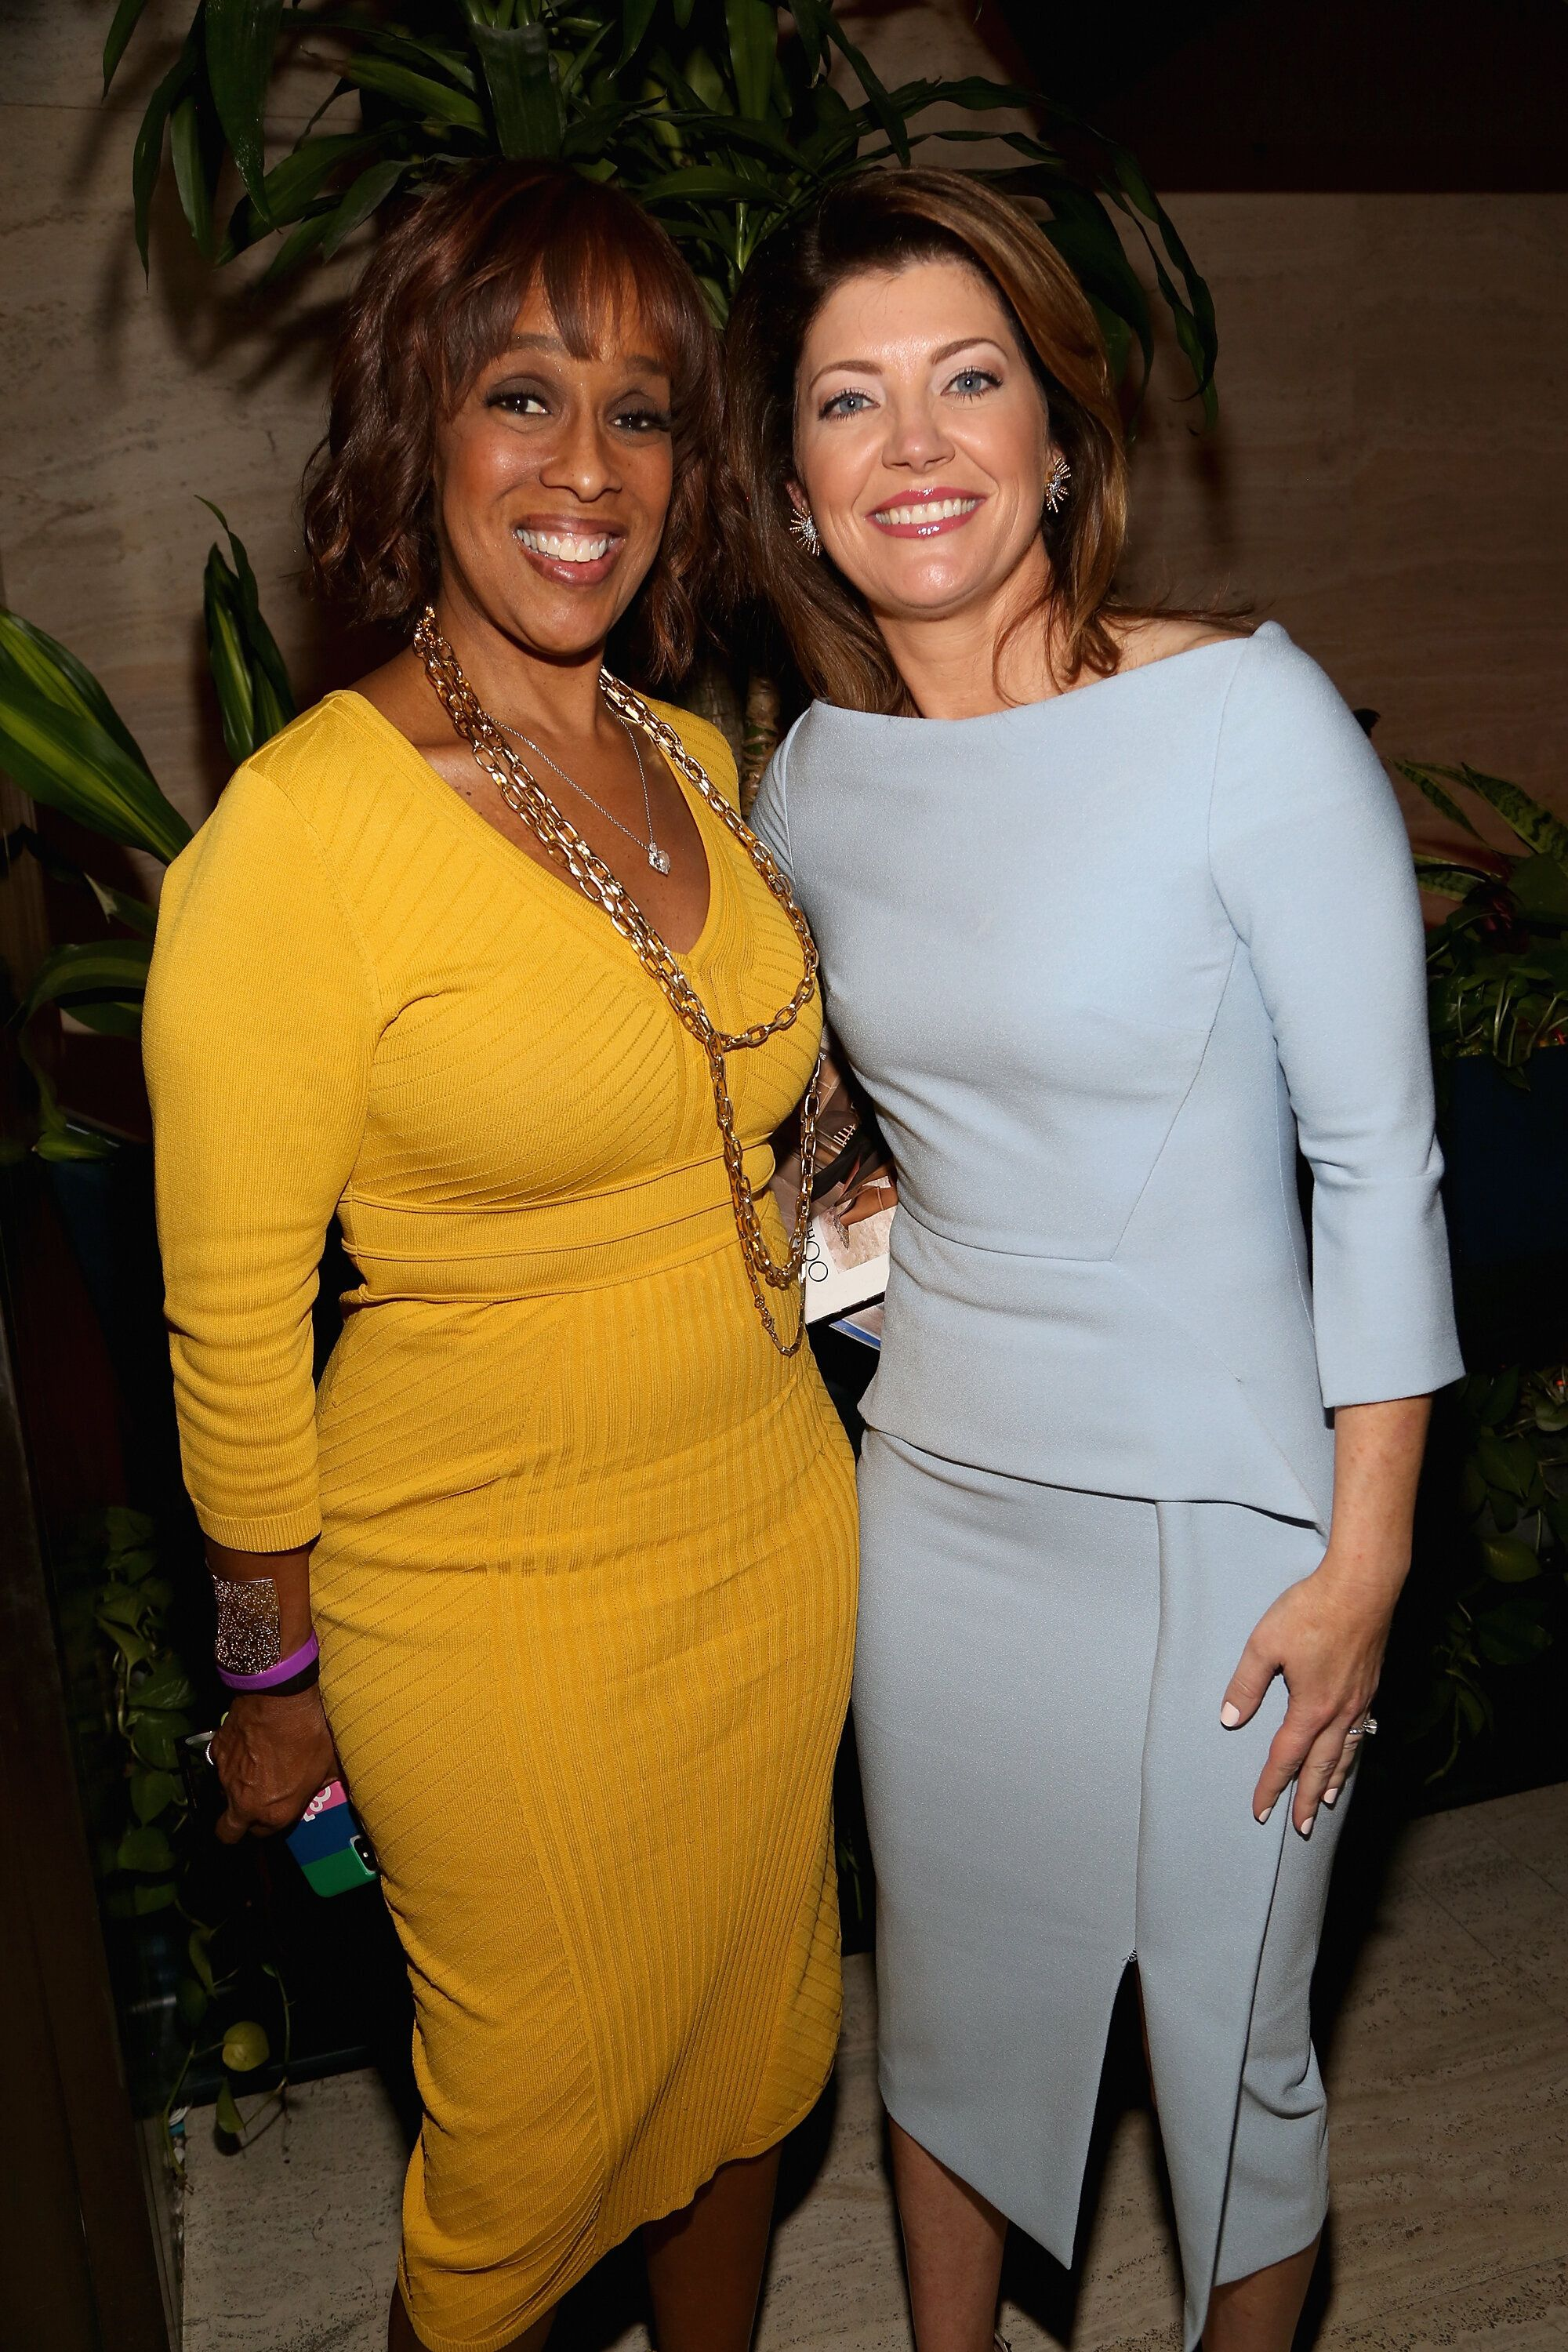 NEW YORK, NY - APRIL 12:  Gayle King and Norah O'Donnell attend The Hollywood Reporter's Most Powerful People In Media 2018 at The Pool on April 12, 2018 in New York City.  (Photo by Sylvain Gaboury/Patrick McMullan via Getty Images)